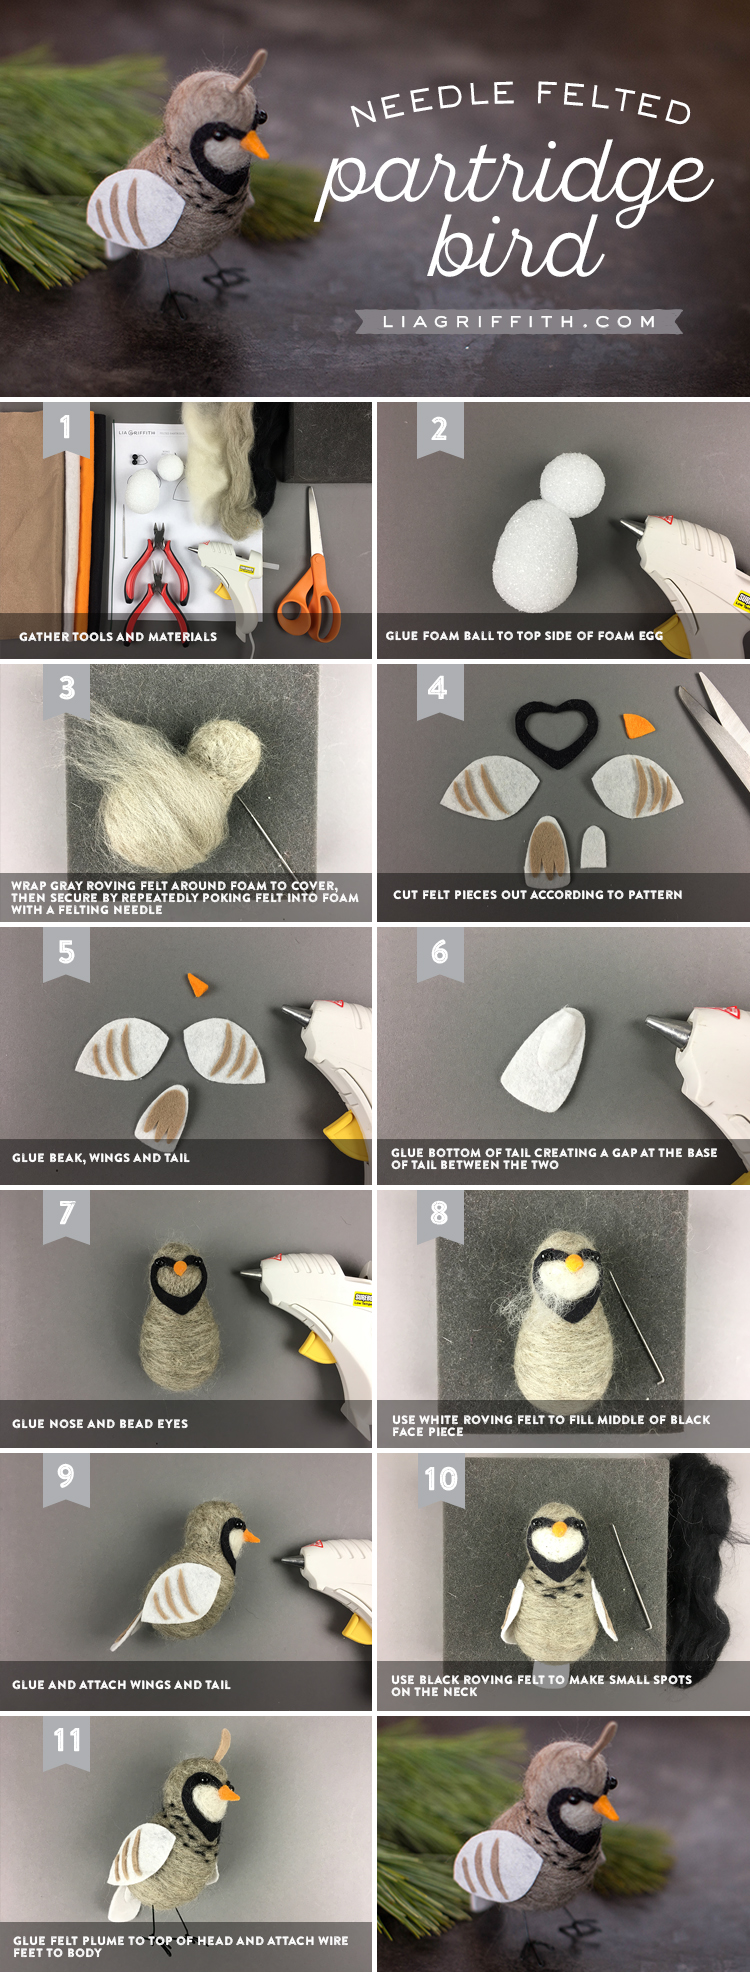 feltedpartridge_tutorial